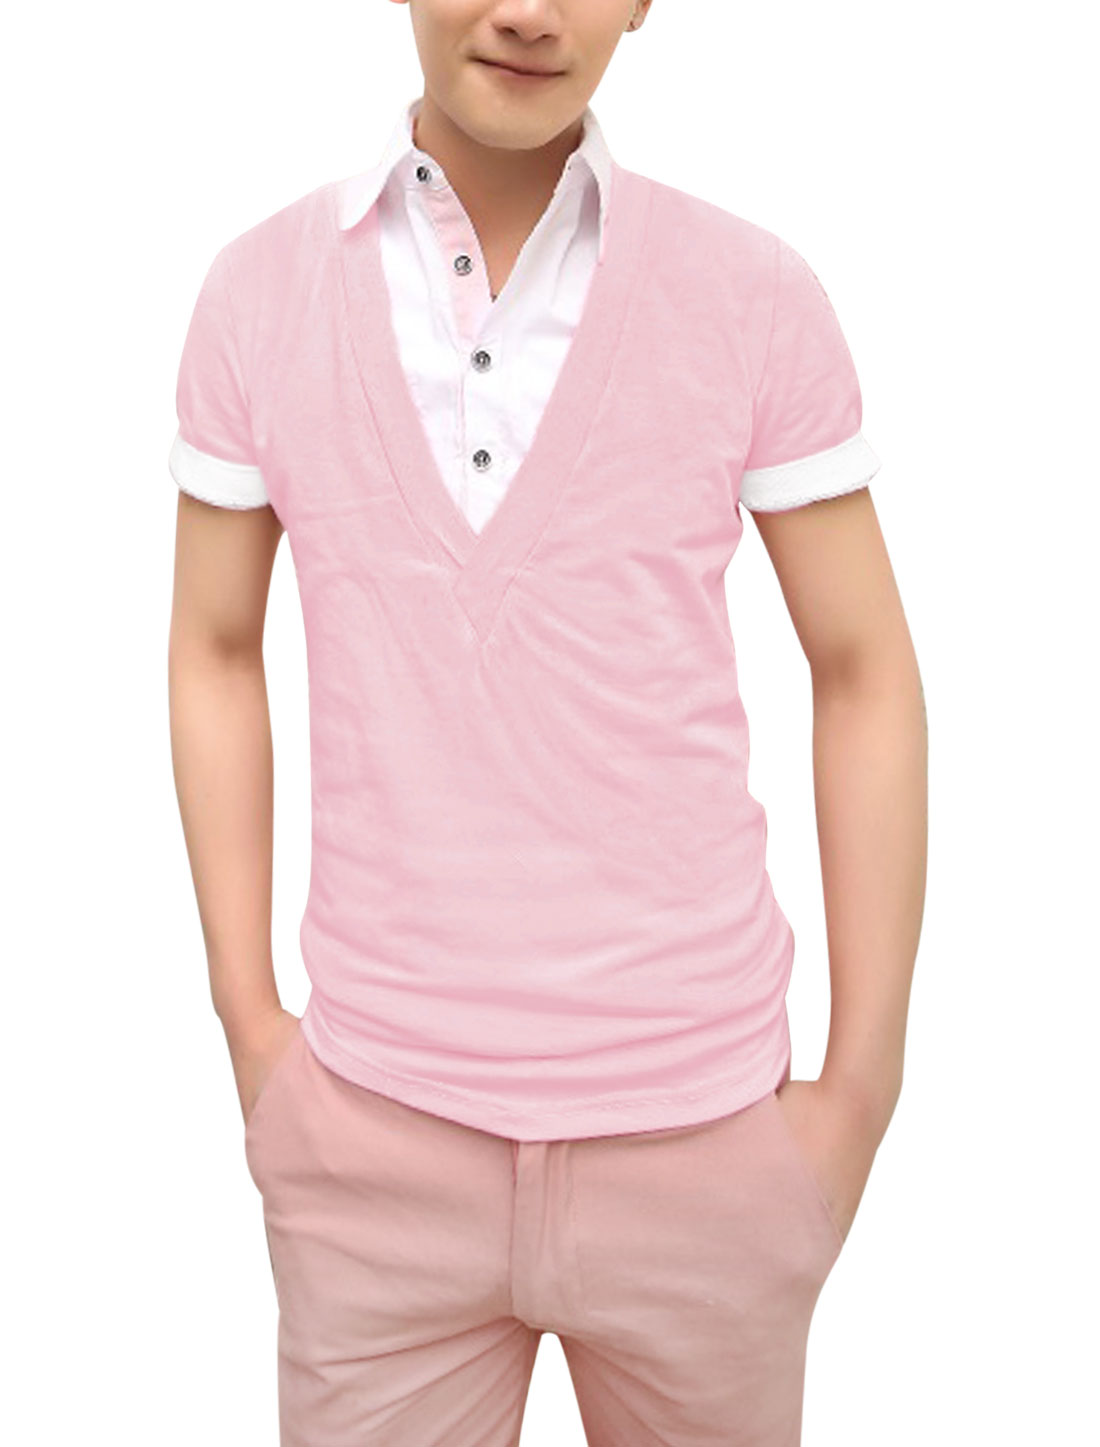 Men Short Sleeve Panel Design Fake Two Pieces Polo Shirt Pink S